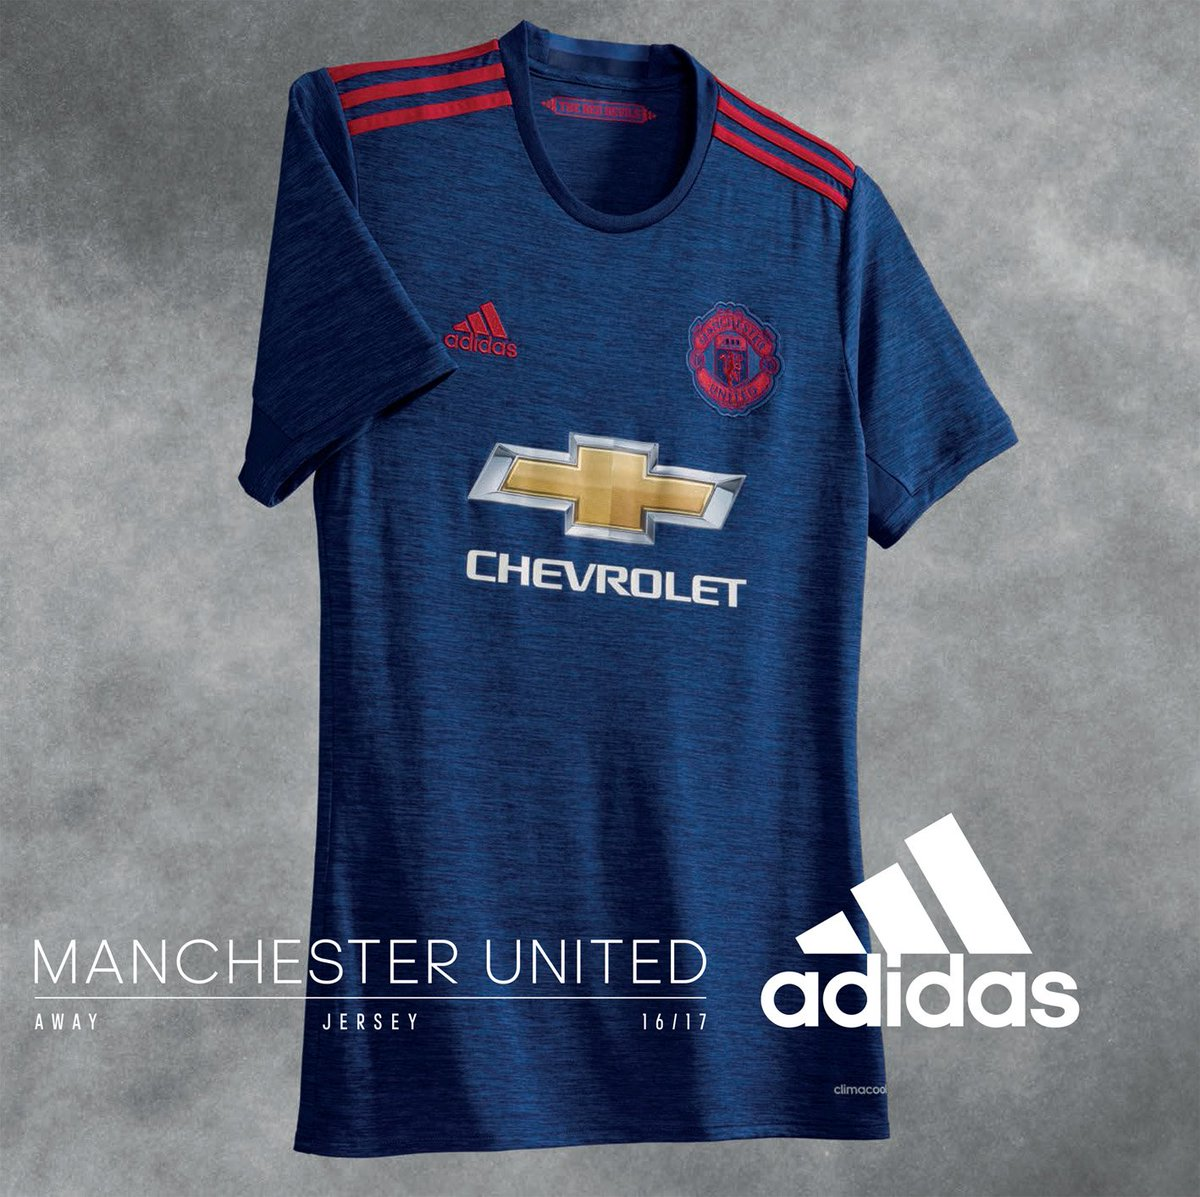 Introducing the new United away shirt for 2016/17. Available now: http://bddy.me/1YldR0p